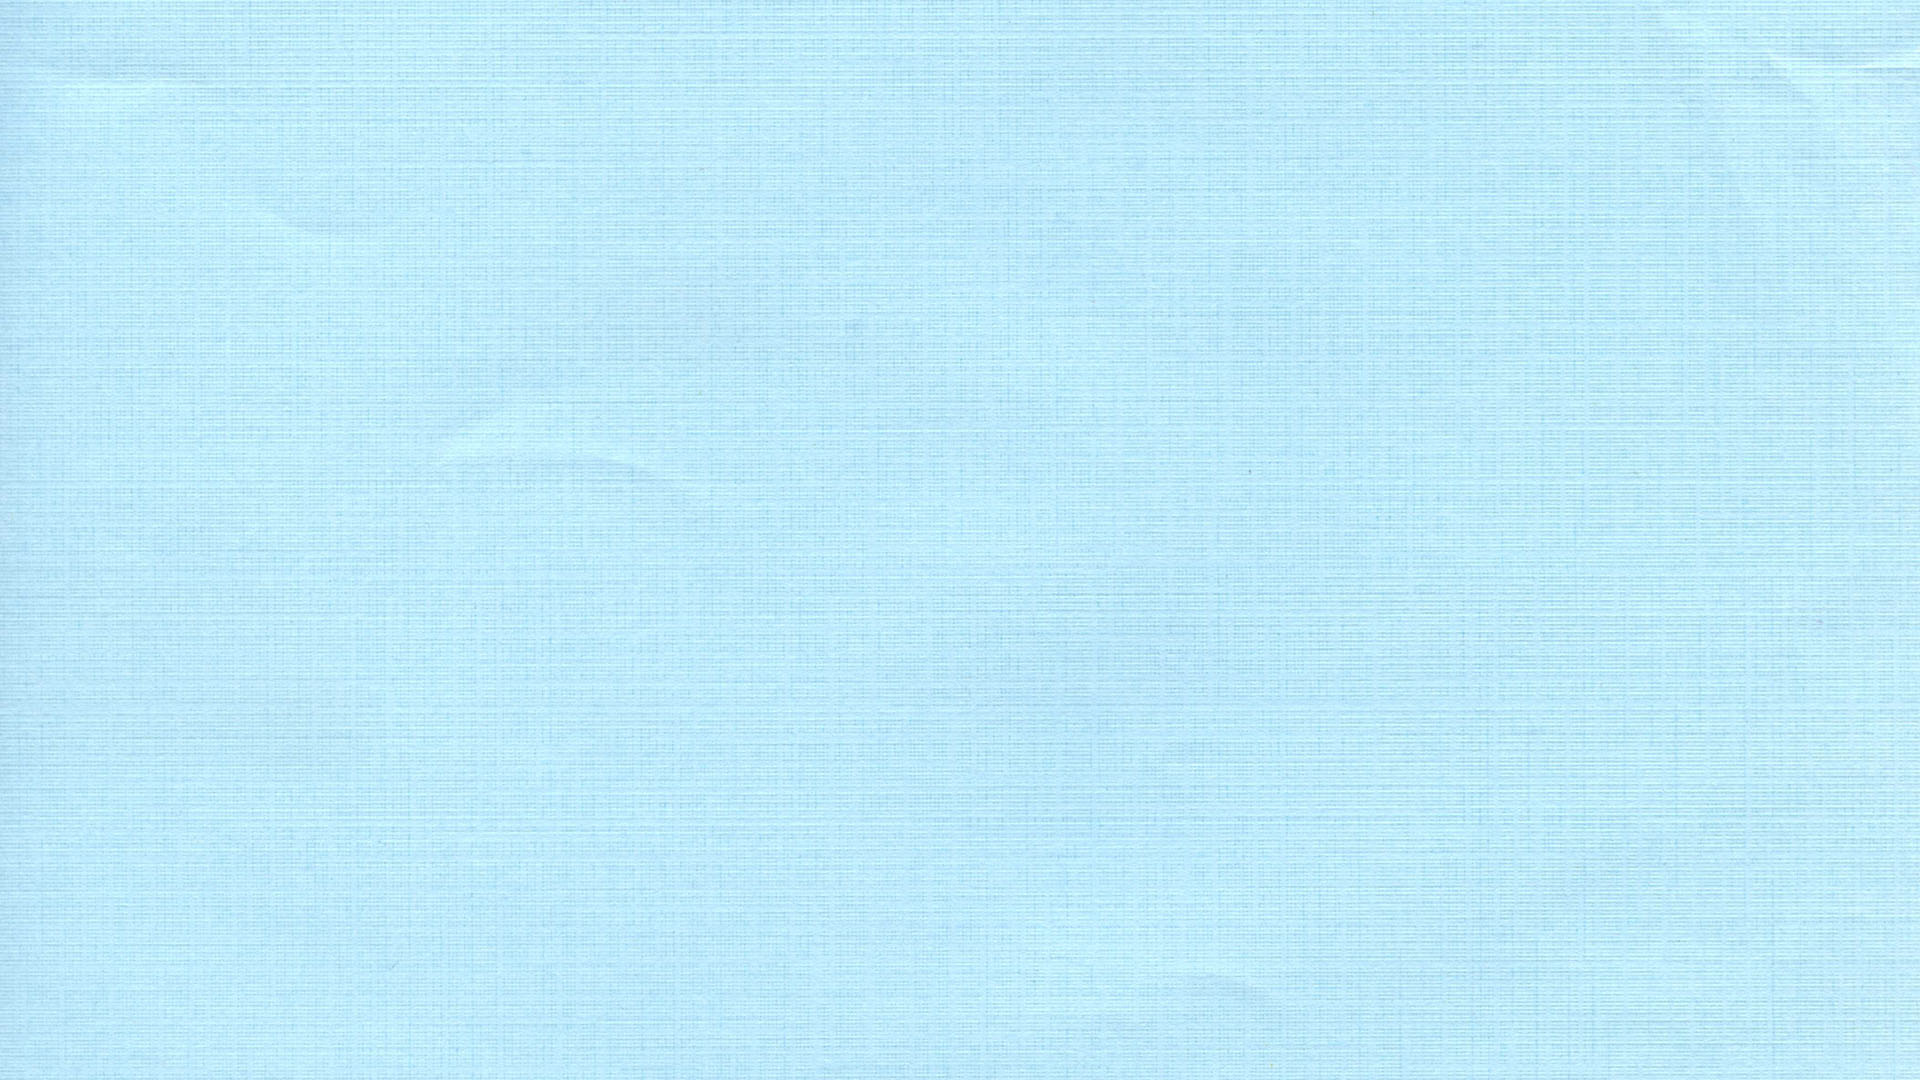 Light Blue Textured Paper By